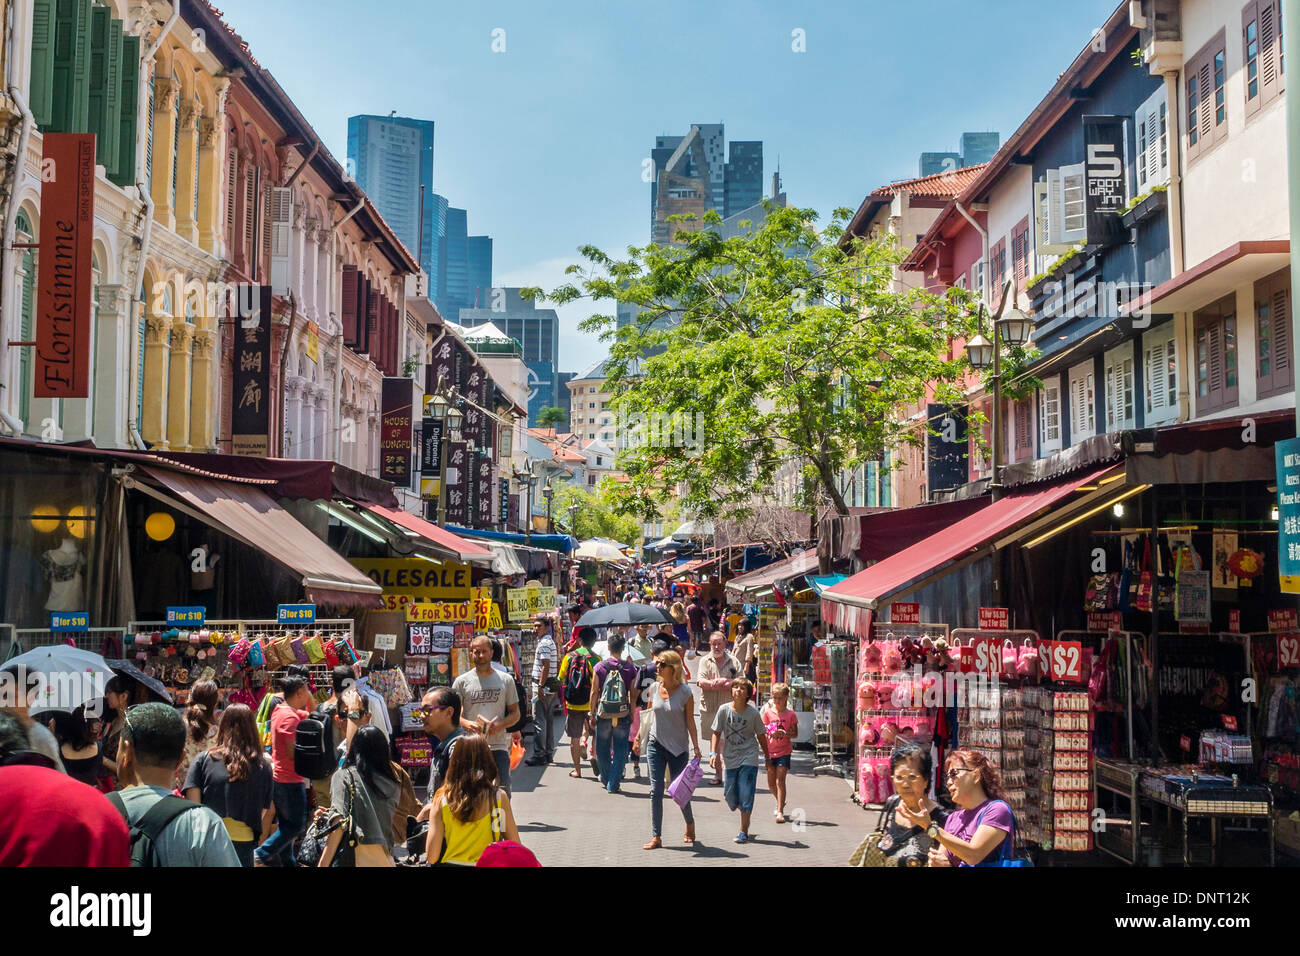 Bustling in Chinatown, Singapore - Stock Image